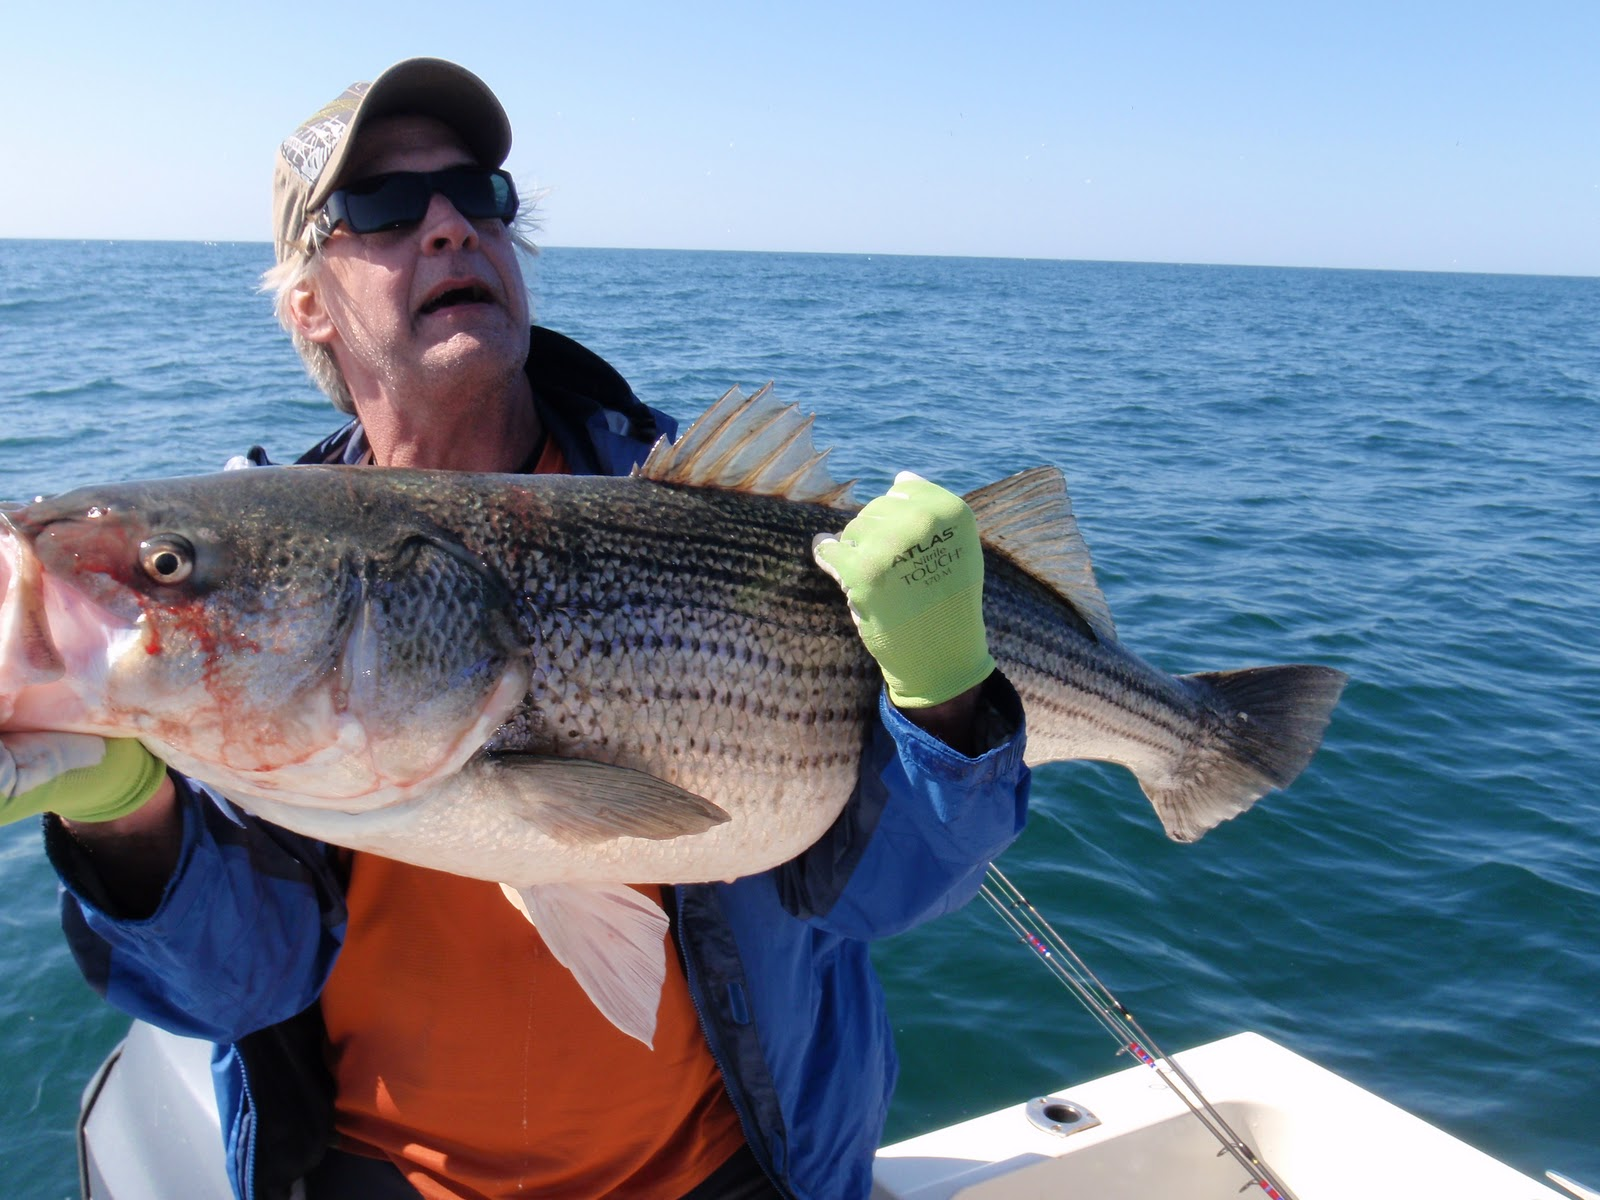 Rock solid fishing march 3rd outer banks fishing report for Rock solid fishing